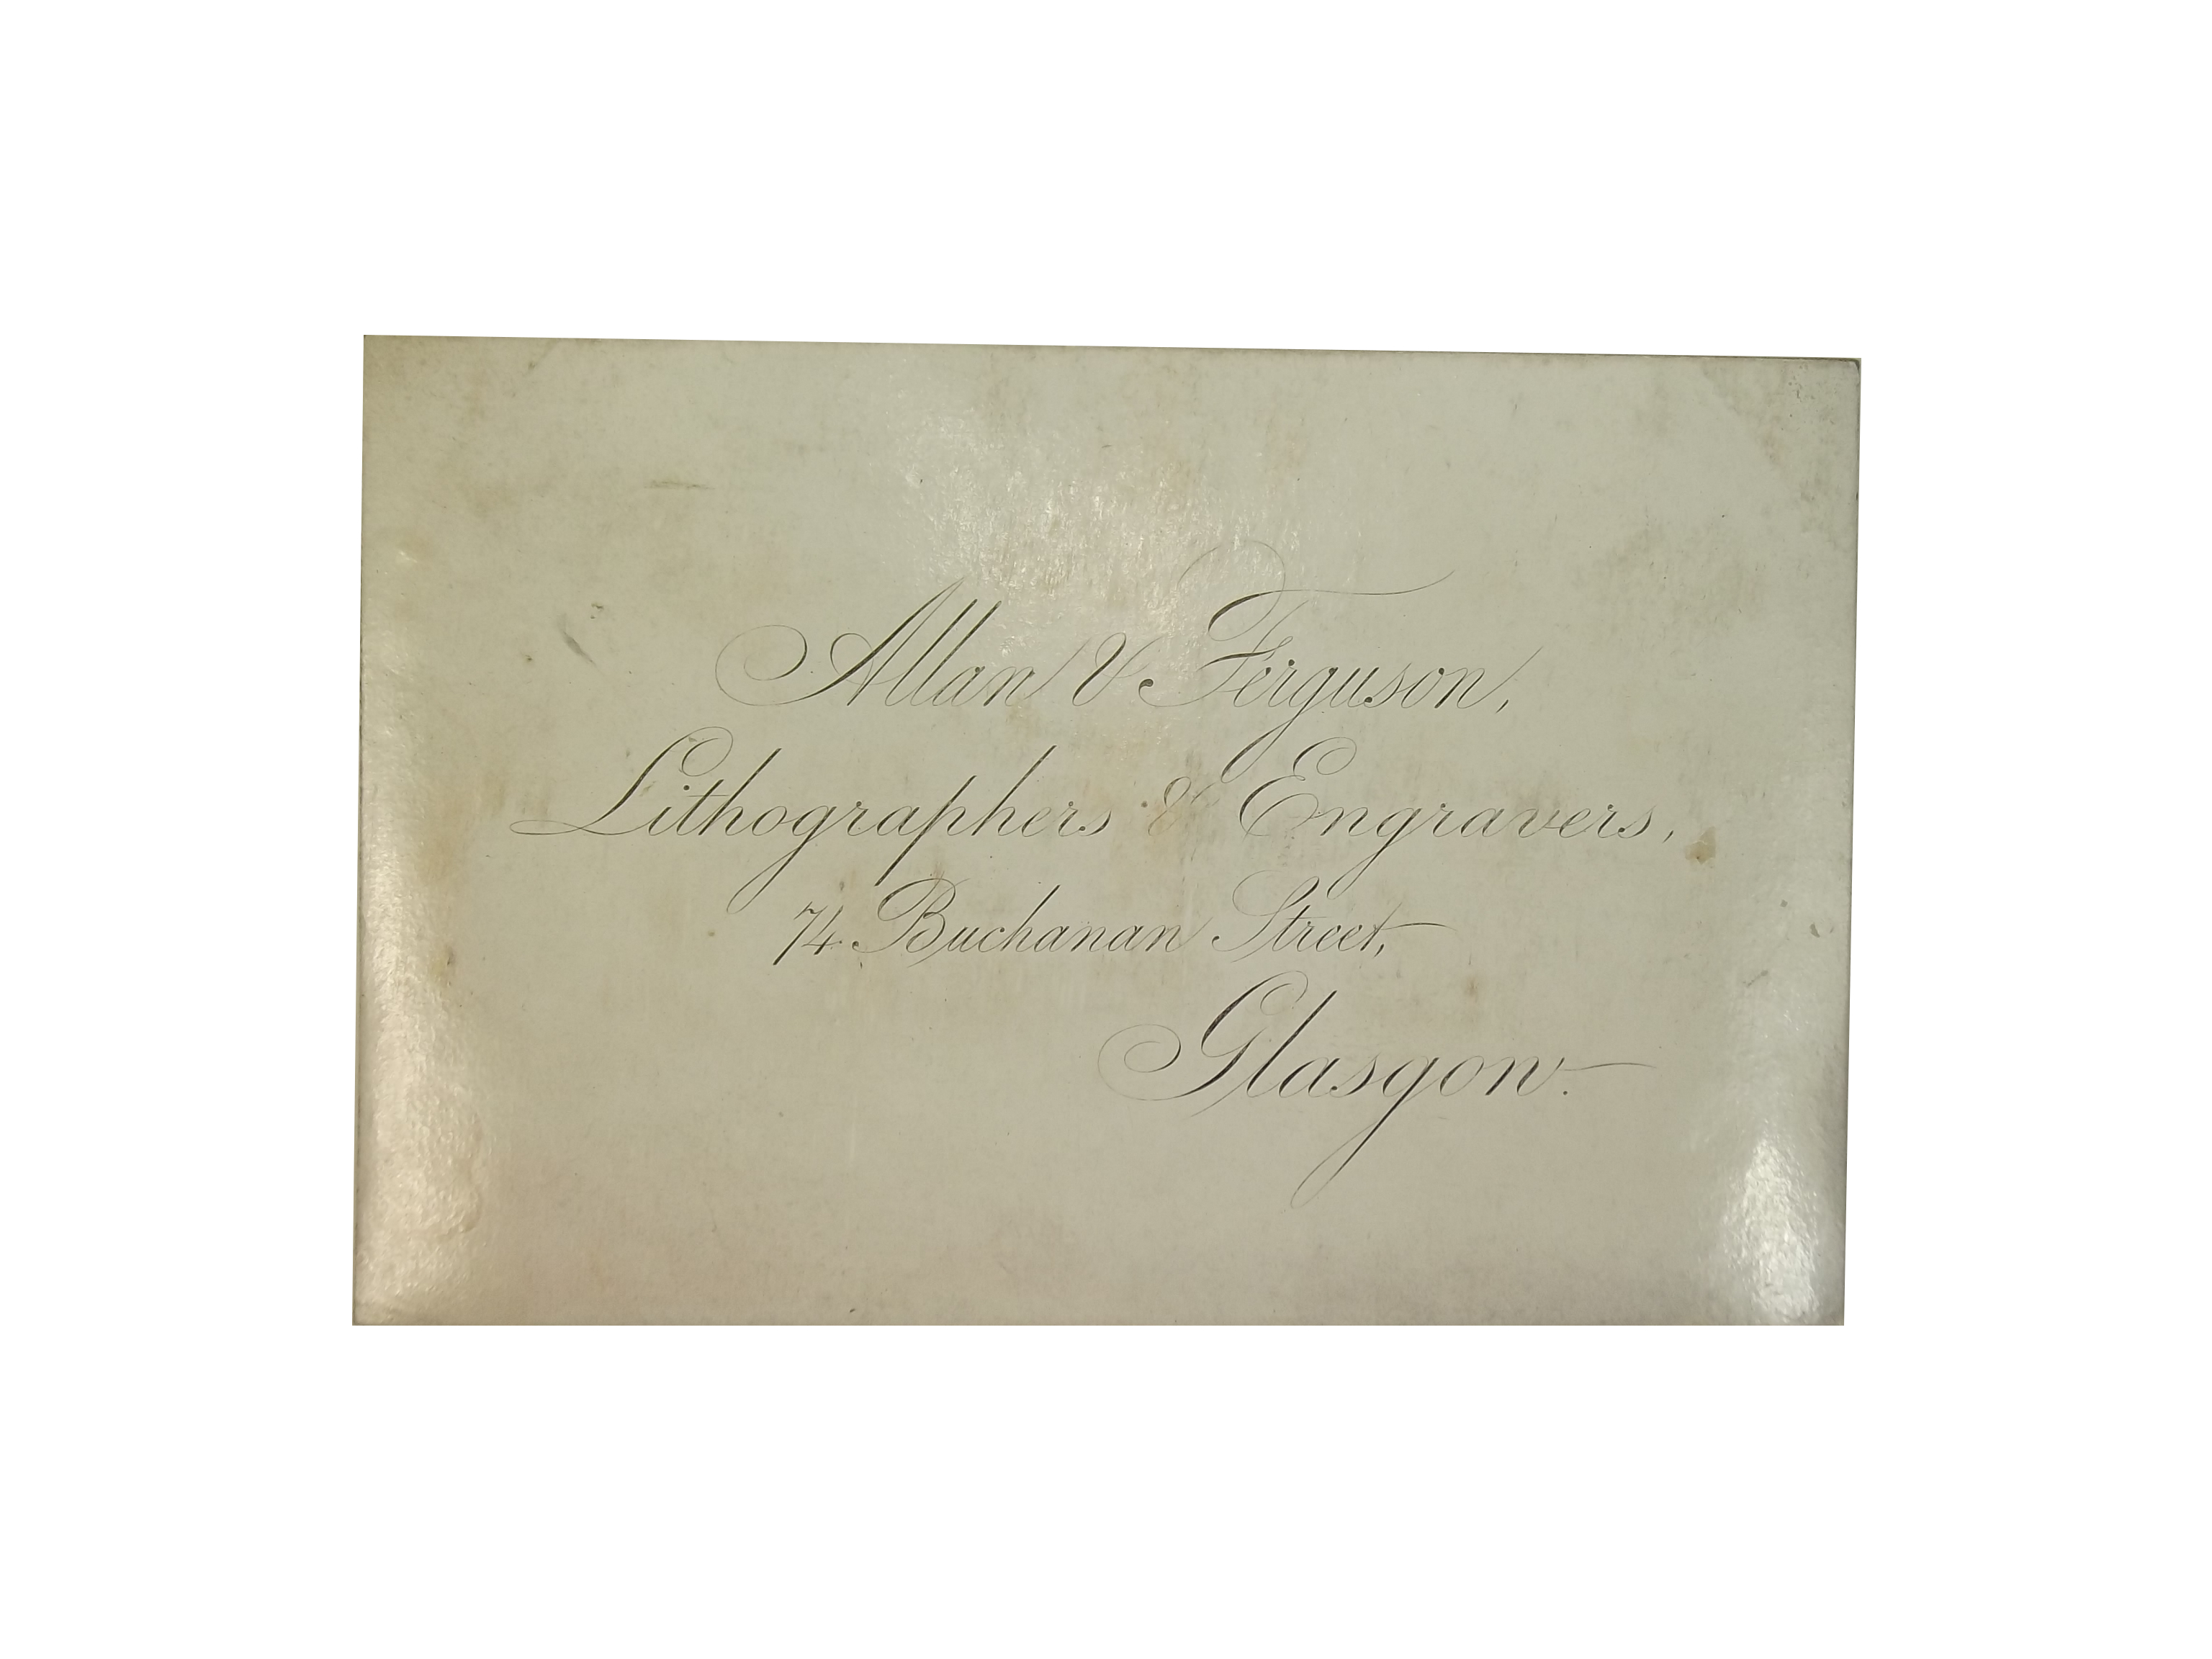 Lithographers & Engravers